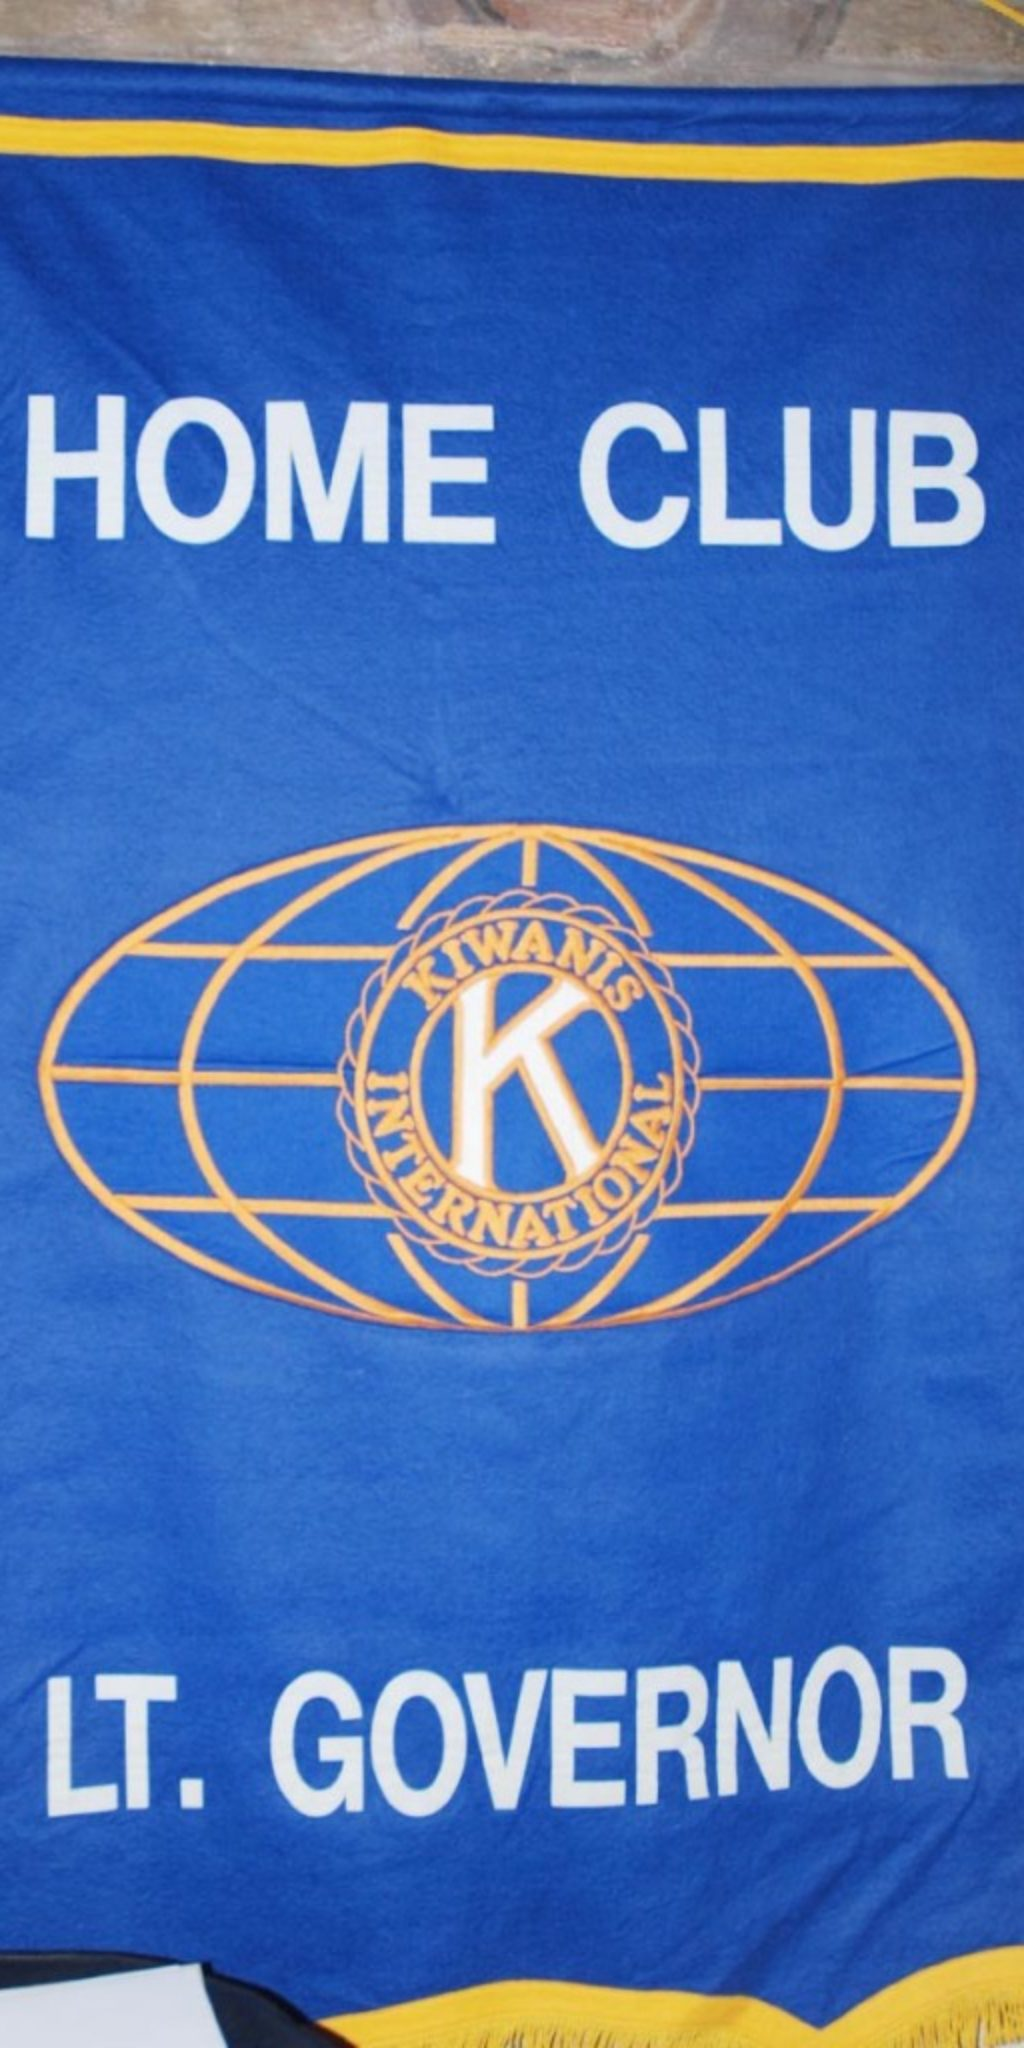 Kiwanis Home Club Lt. Governor Division 11